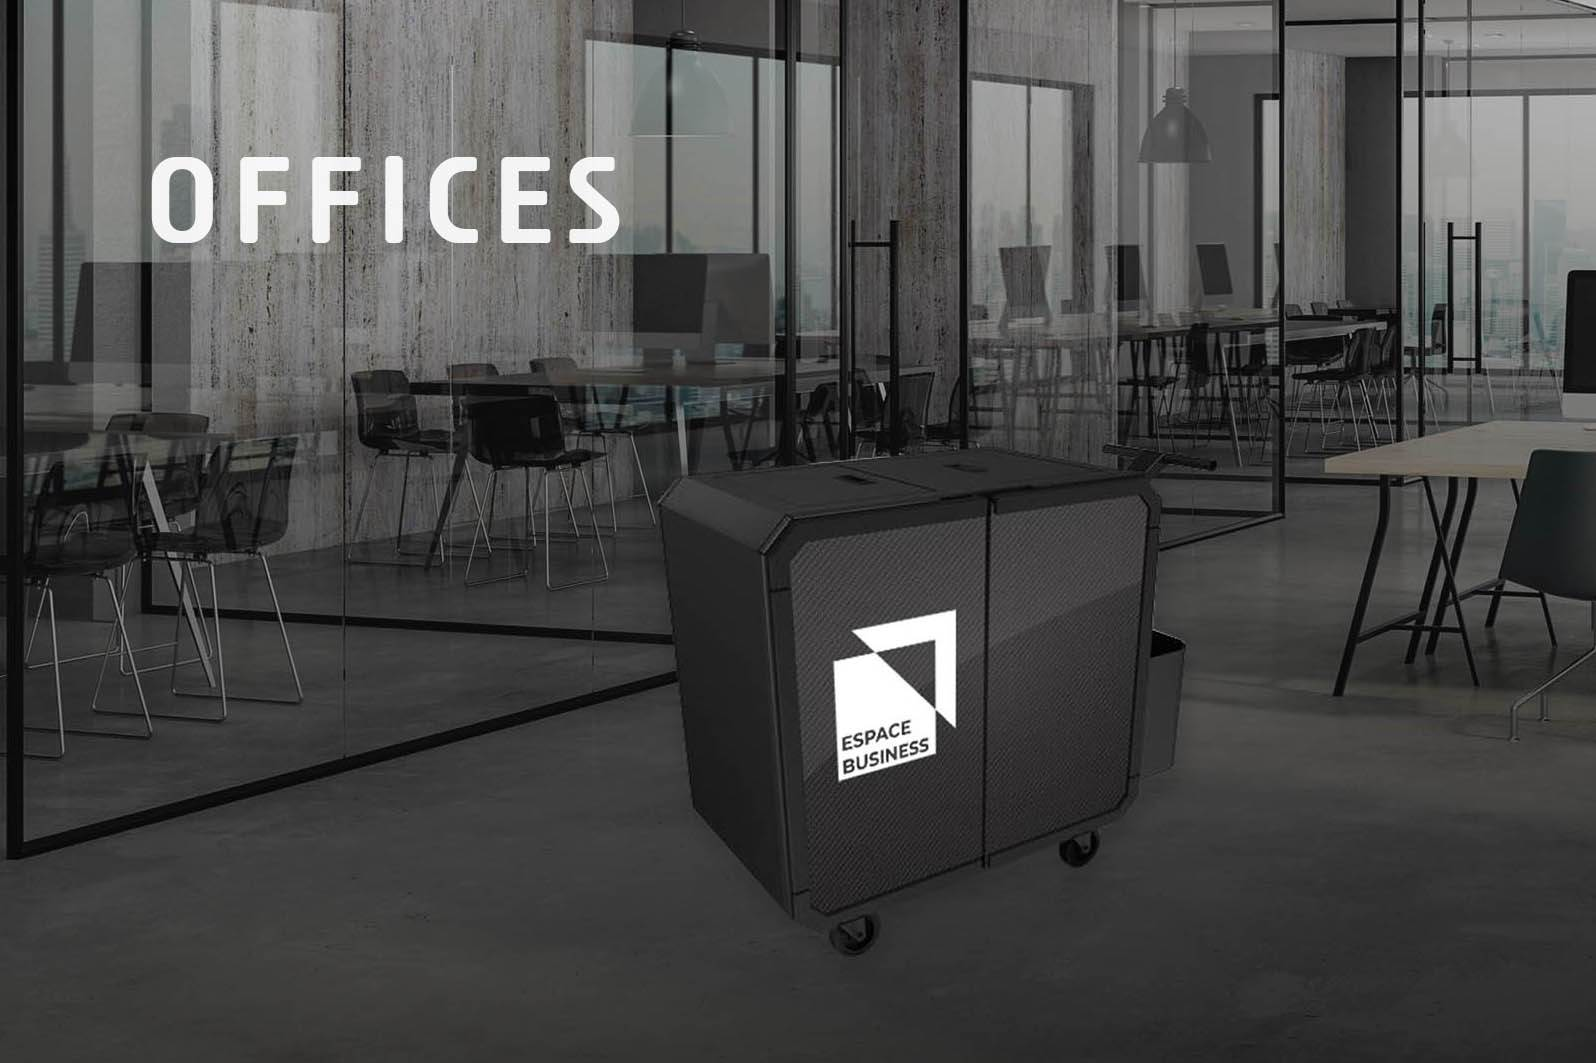 Netsmart professionnal cleaning trolley for offices